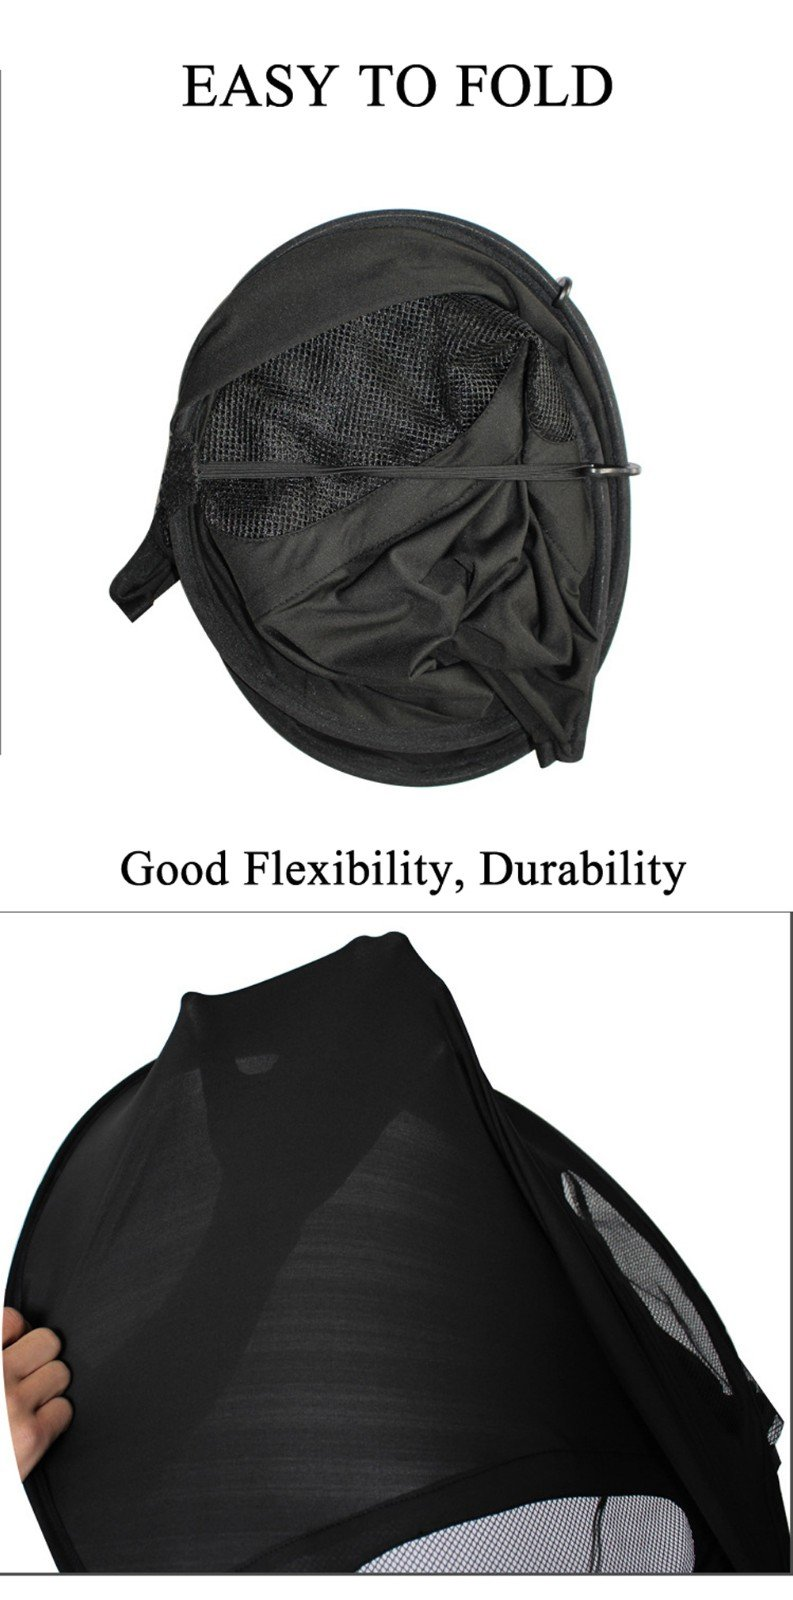 Baby Stroller Sun Ray Shade Pram UV Protection Cover, Weather Shield, Universal, Cotton LYCRAR for Infant Kids- 4 Colors,Black by YWXJY (Image #5)